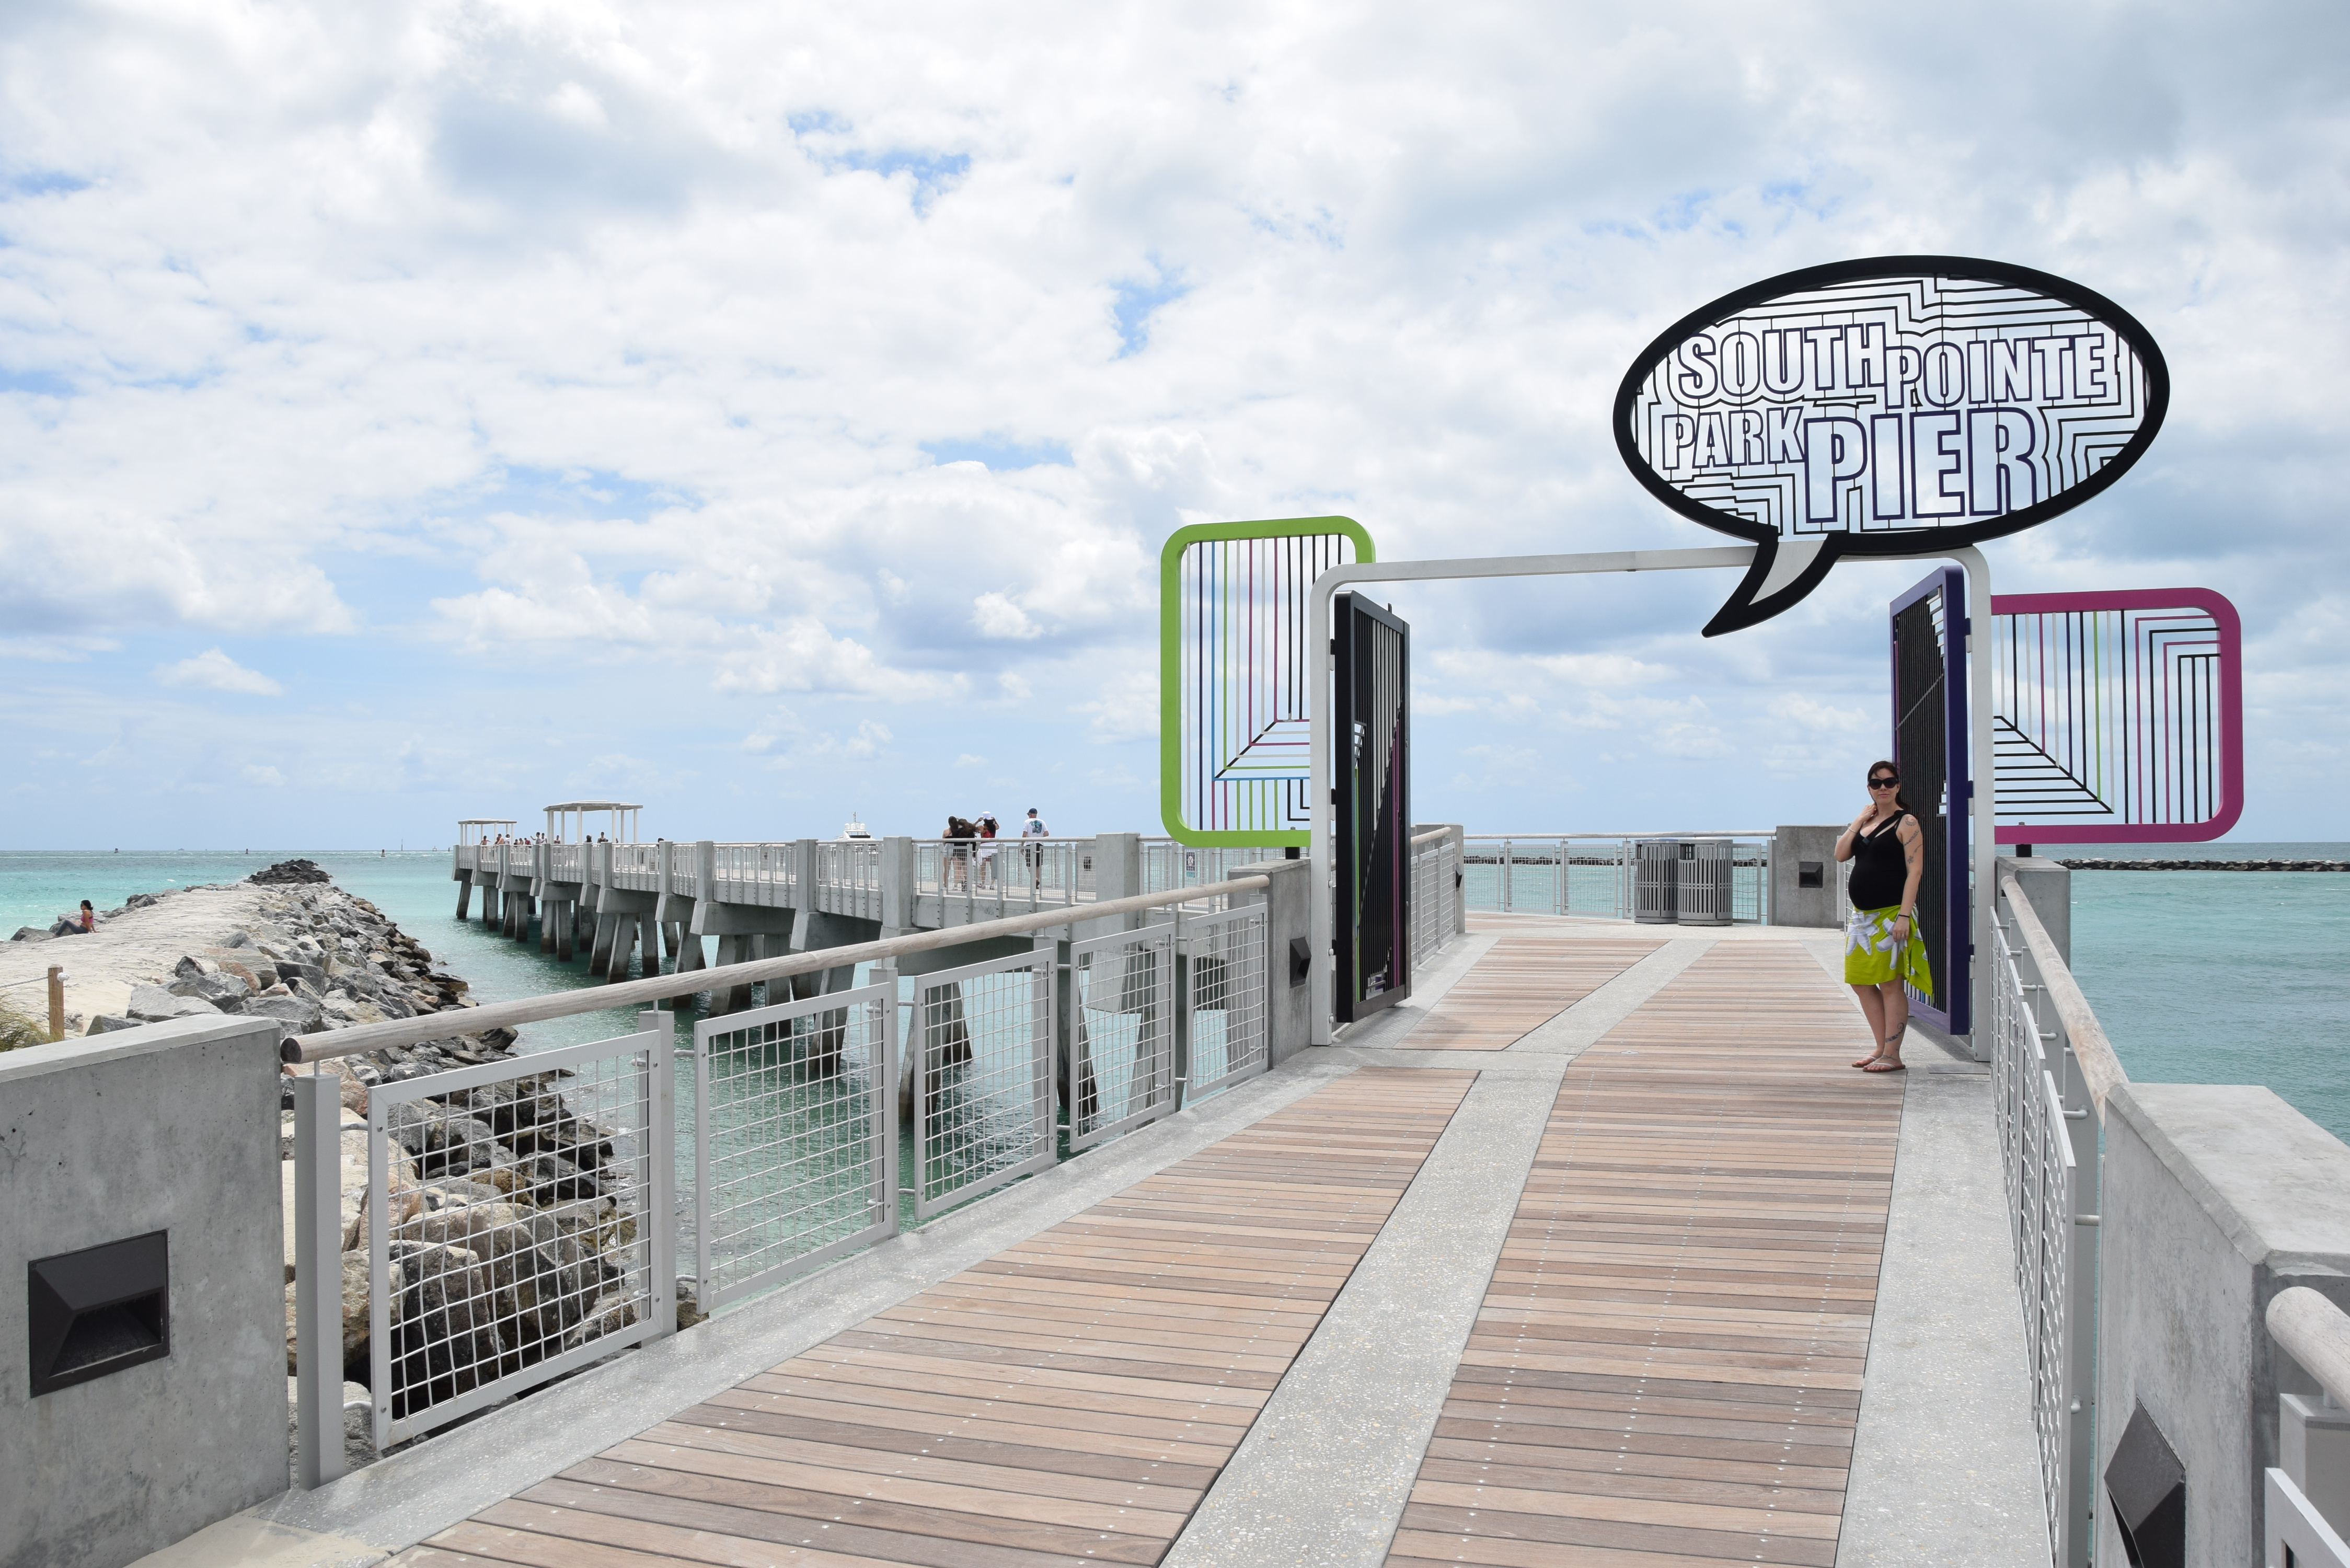 South Point Pier